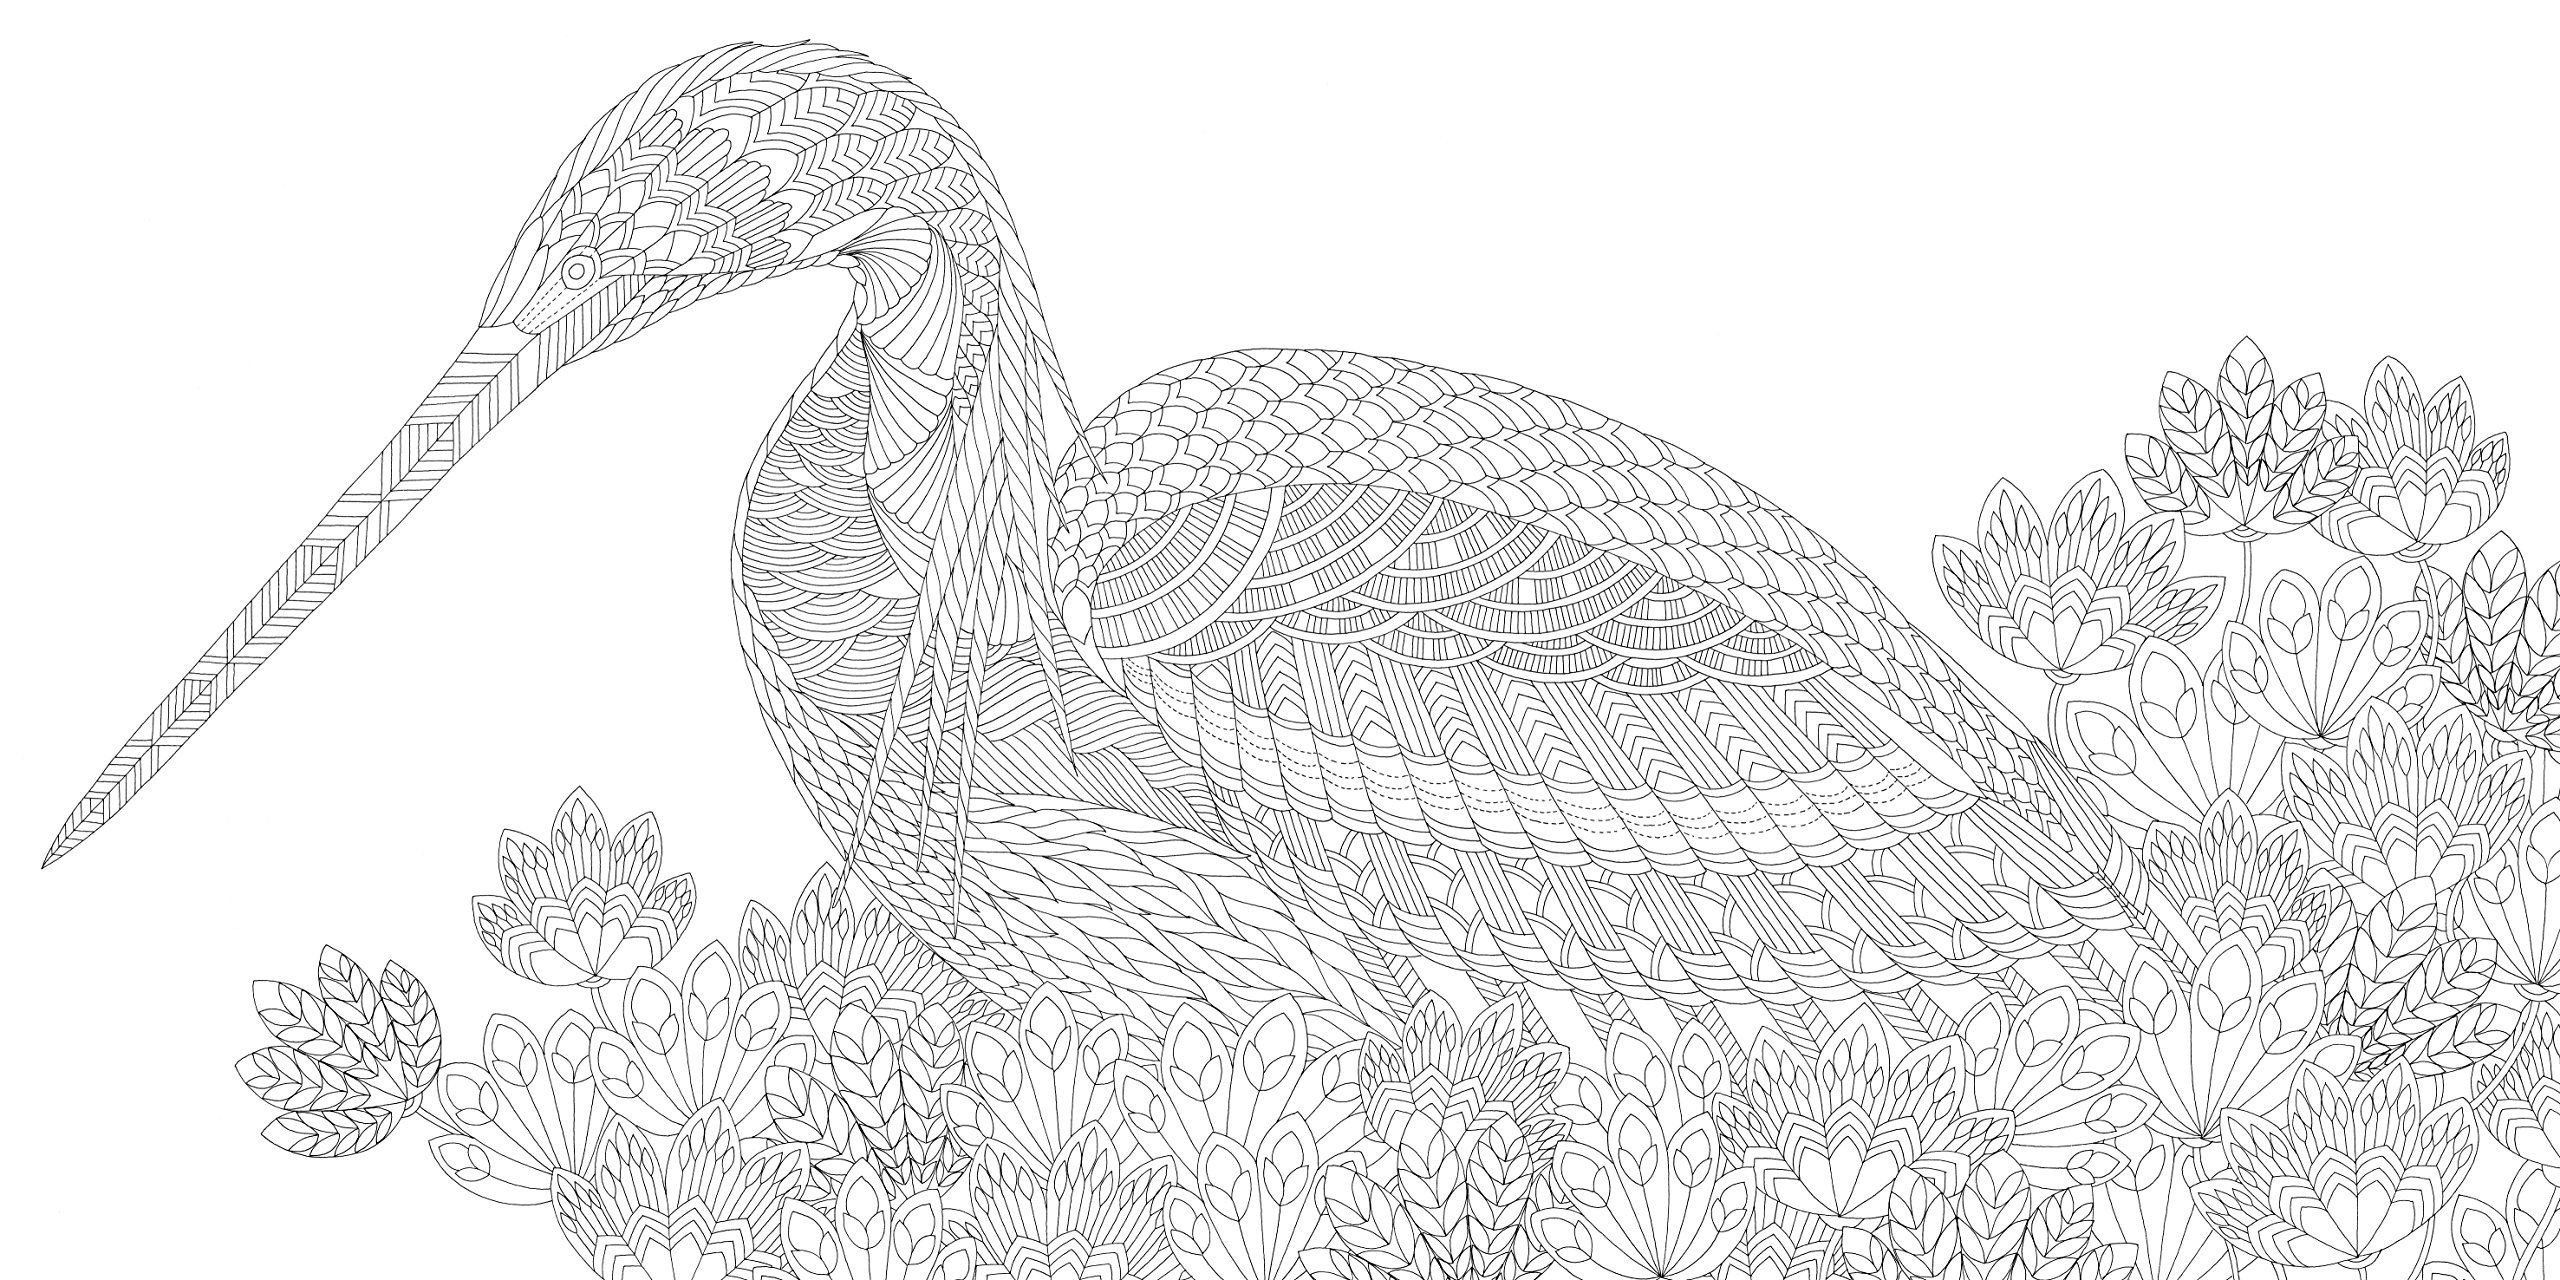 Millie Marotta Coloring Book Best Of Amazon Beautiful Birds And Treetop Treasures A Millie